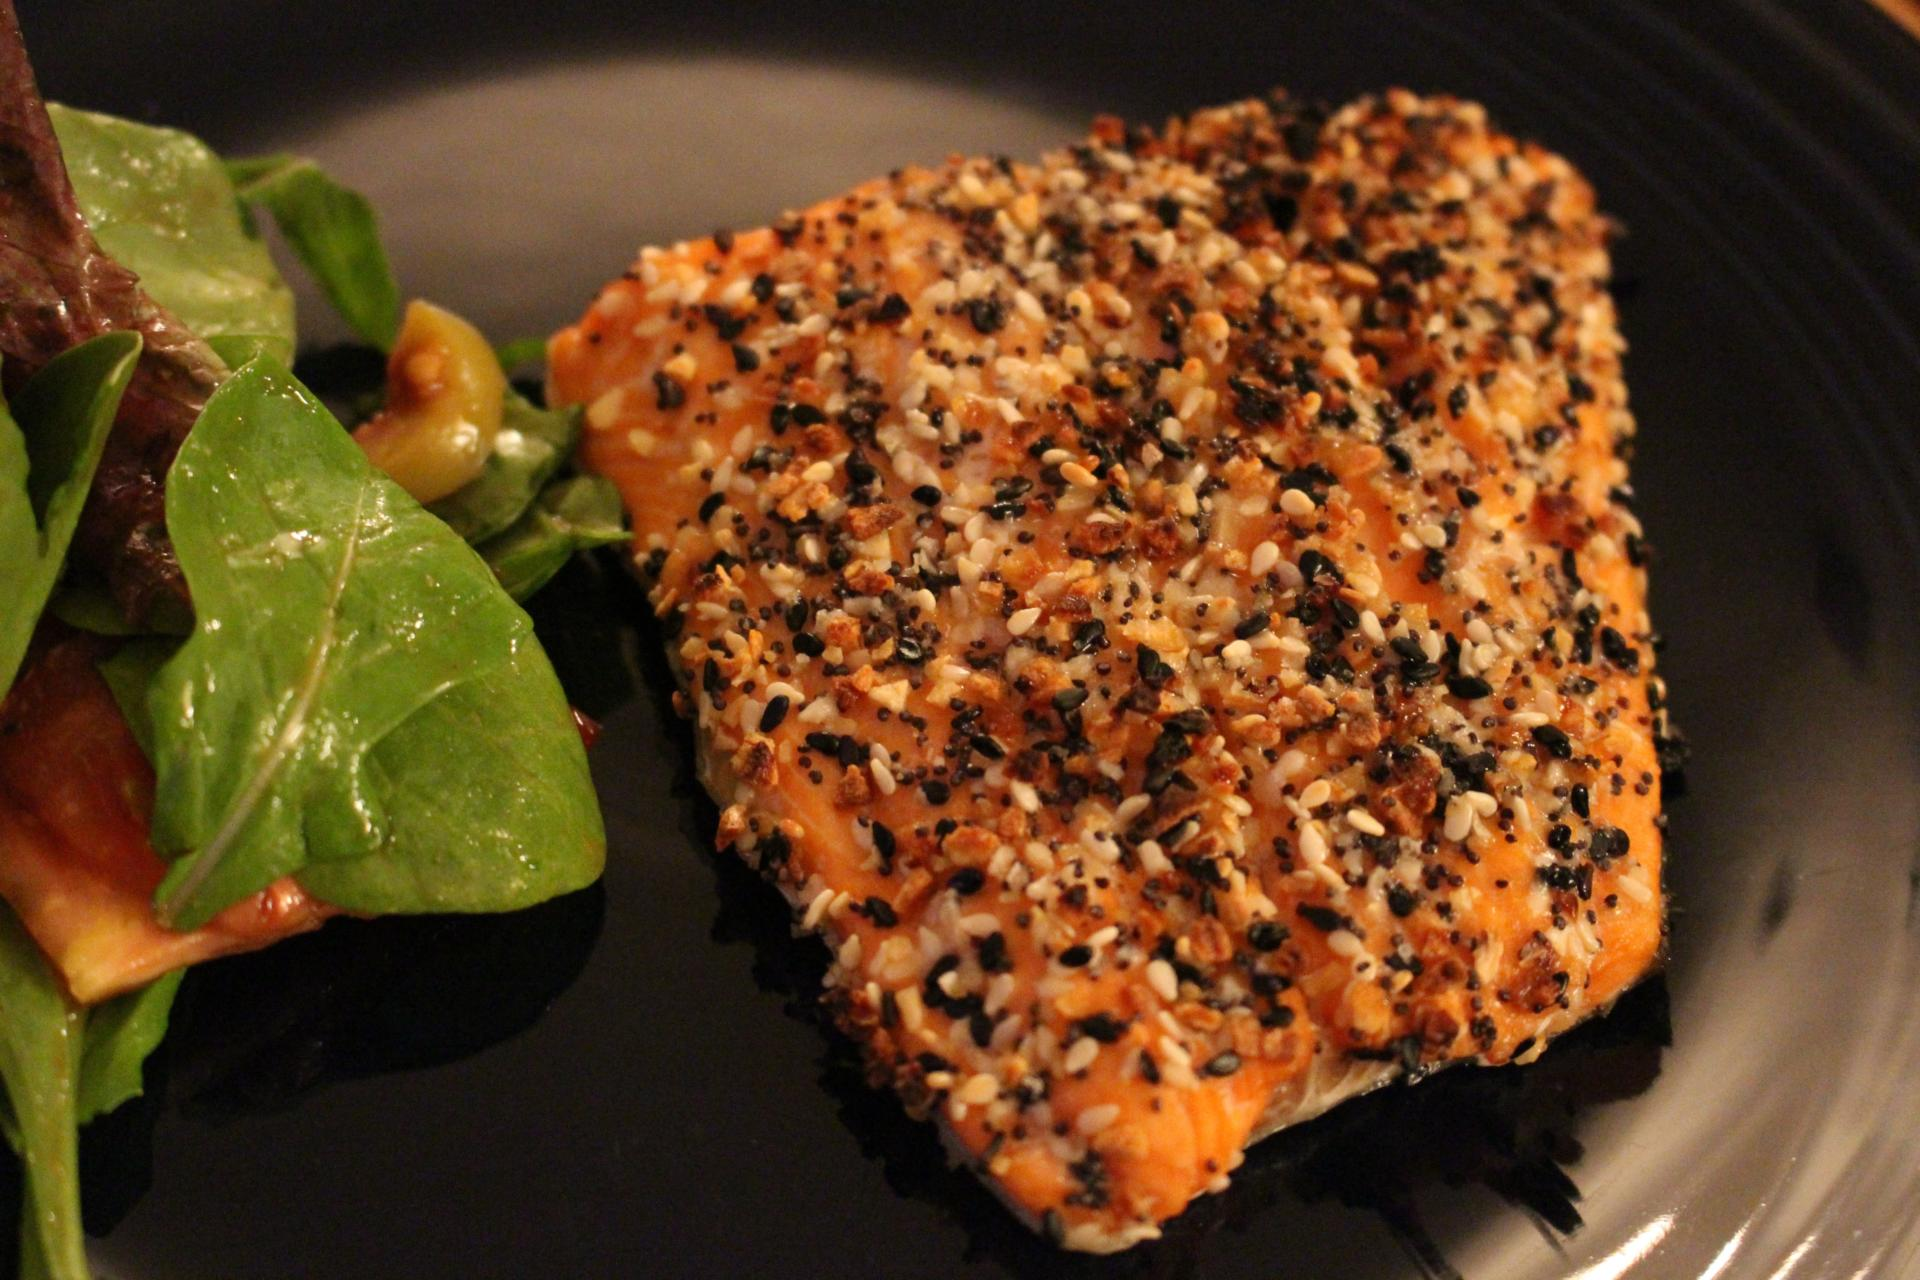 FISH: Everything But The Bagel Salmon by New Jersey foodie blogger What's For Dinner Esq.